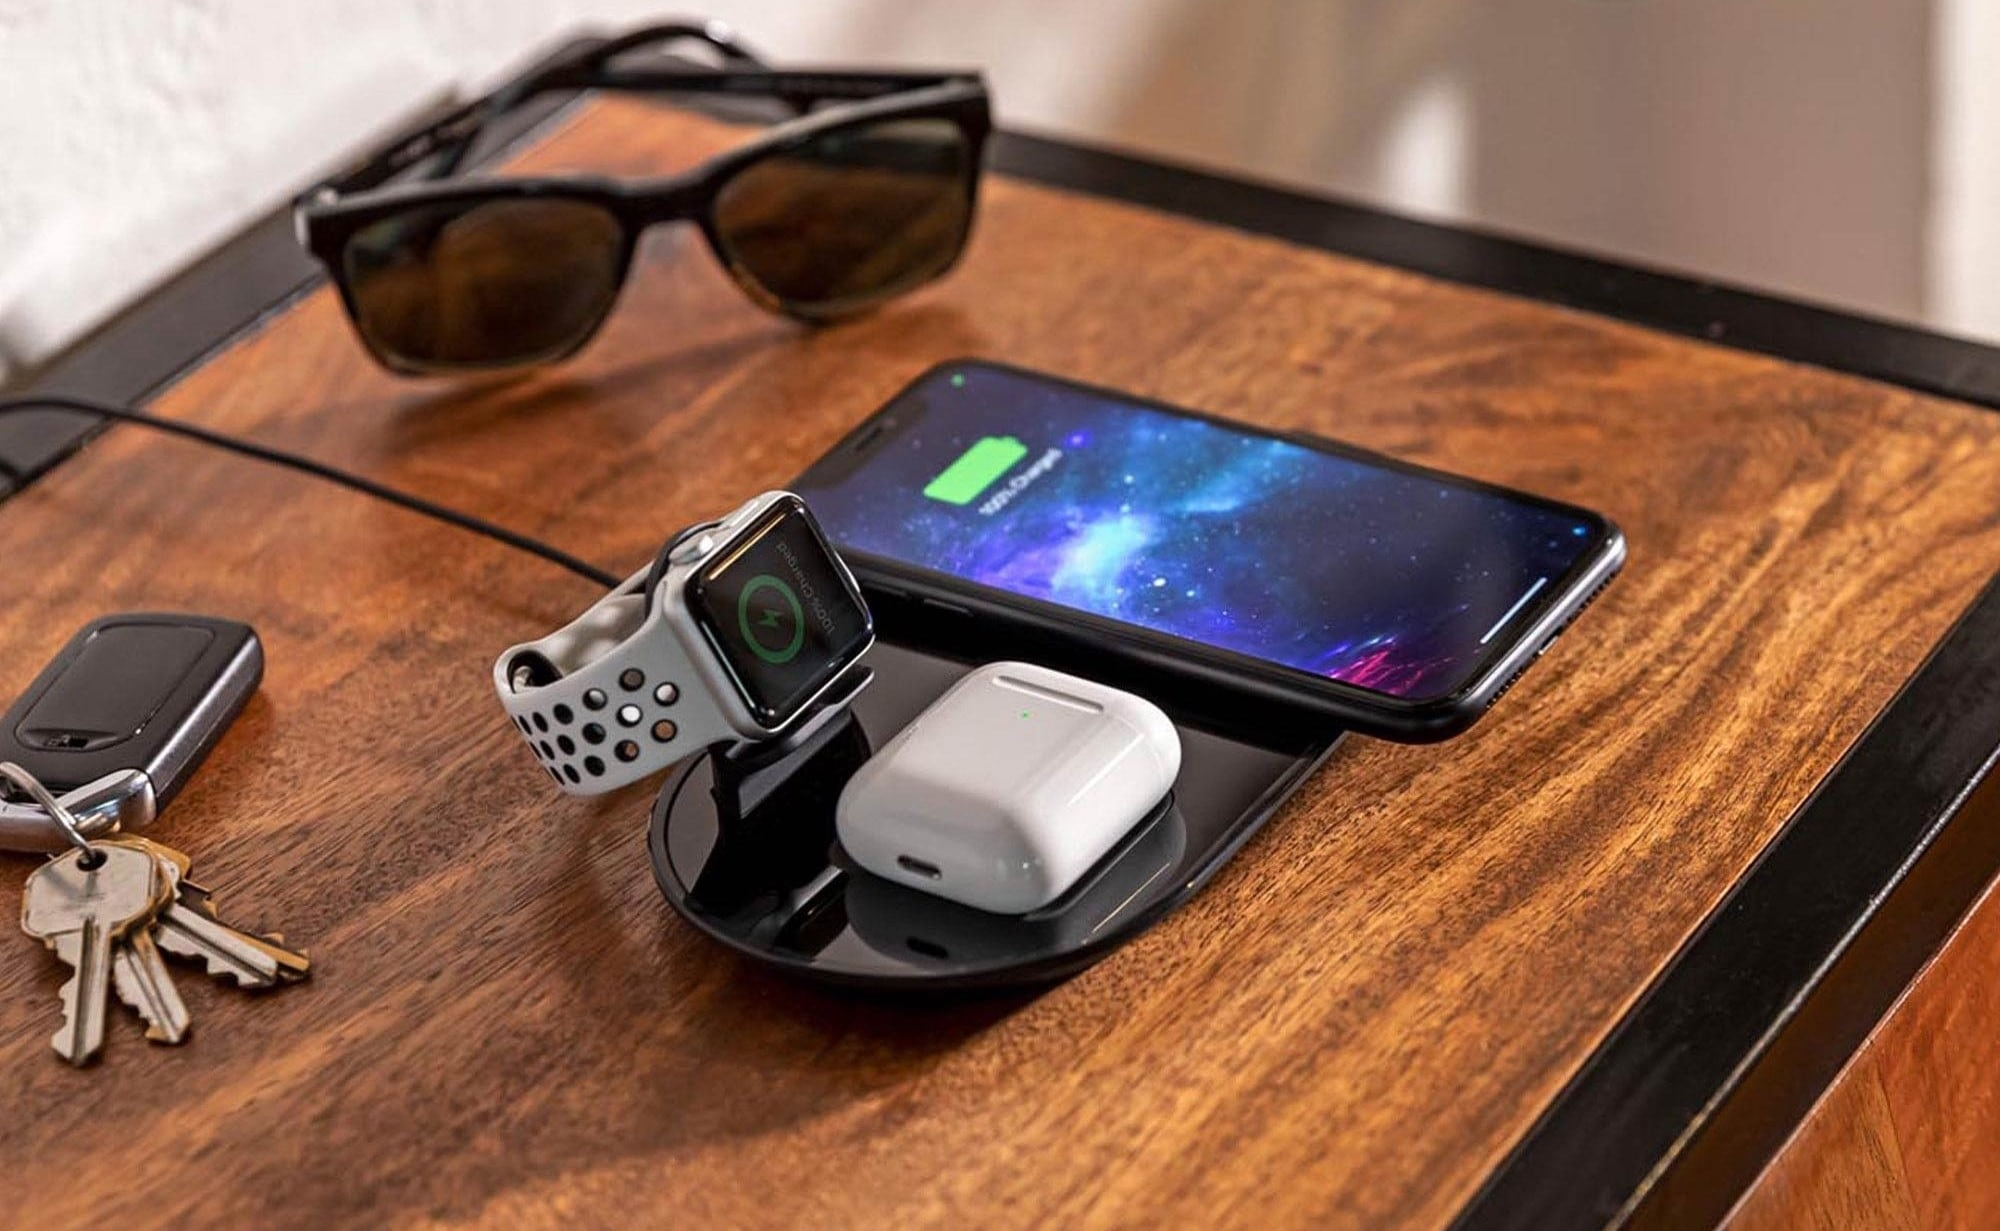 mophie 3-in-1 wireless charging pad Qi Charger charges 3 devices at the same time